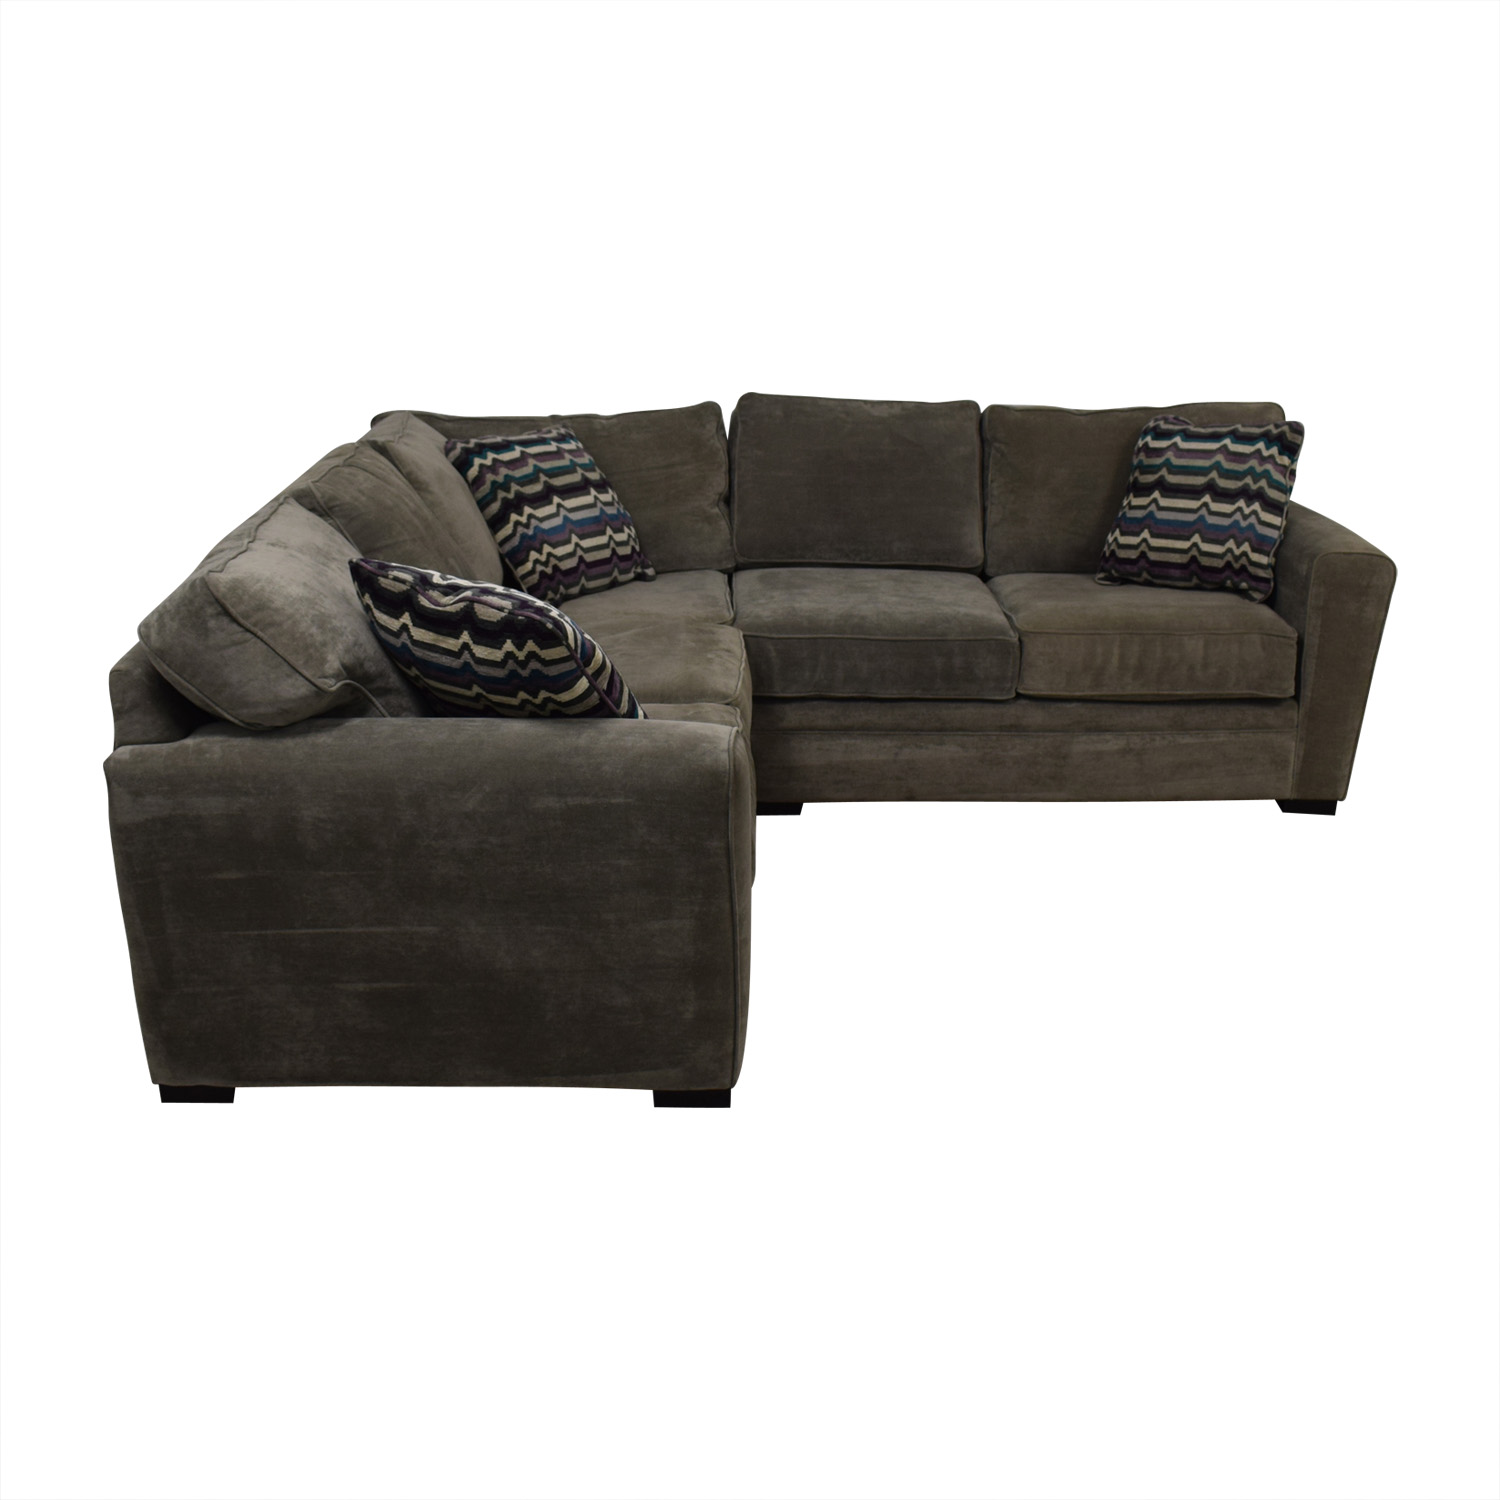 buy Raymour & Flanigan Artemis II Gray Microfiber L-Shaped Sectional Sofa Raymour & Flanigan Sectionals